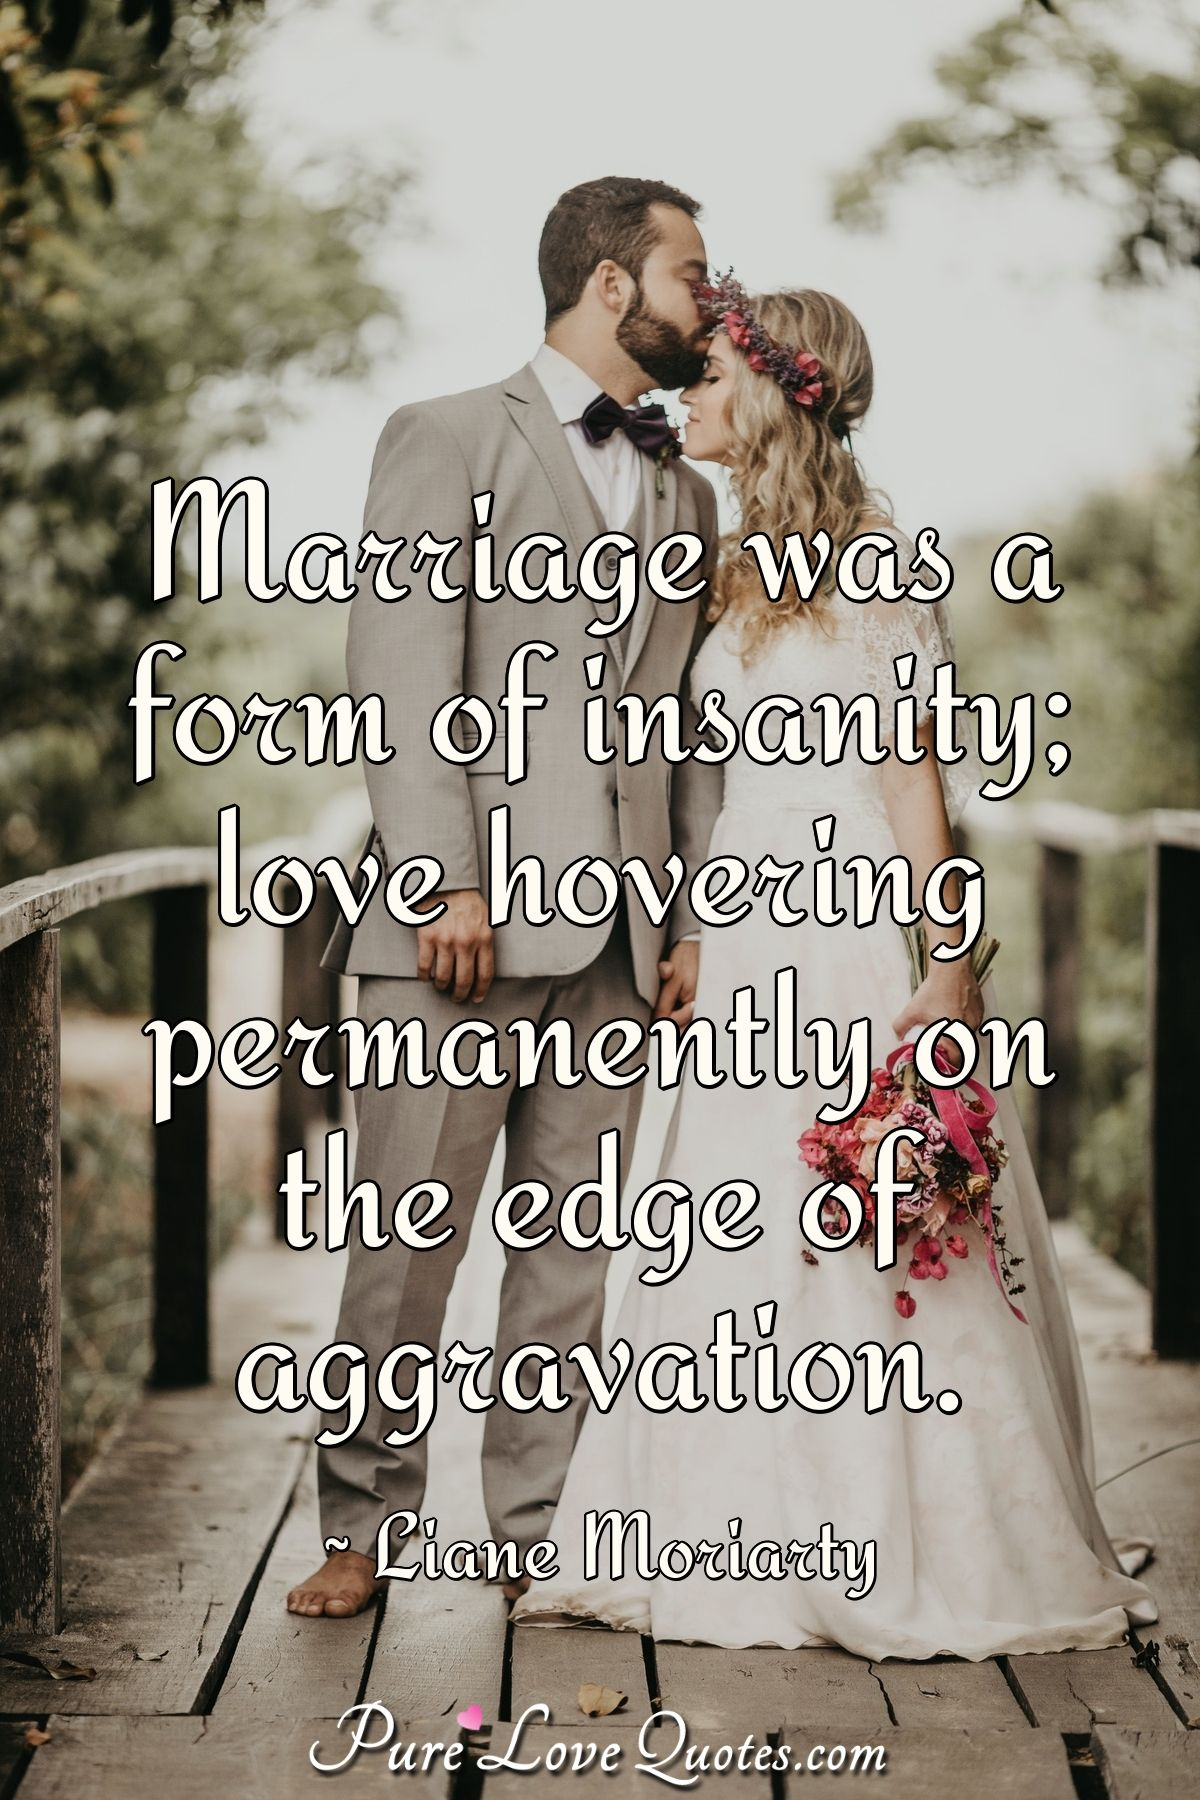 Marriage was a form of insanity; love hovering permanently on the edge of aggravation. - Liane Moriarty